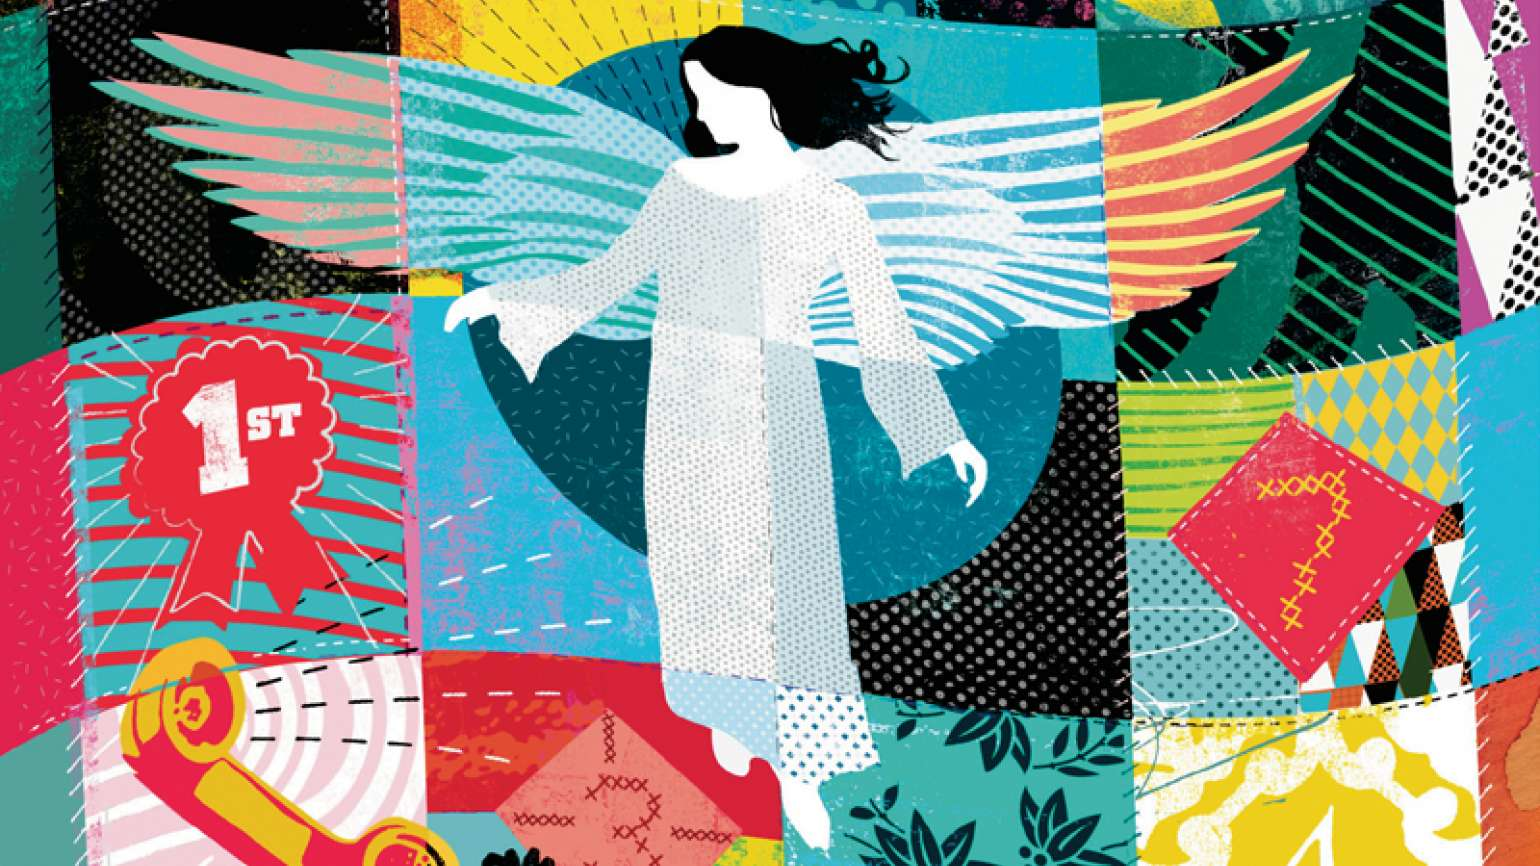 An artist's rendering of a quilt with an angel on it